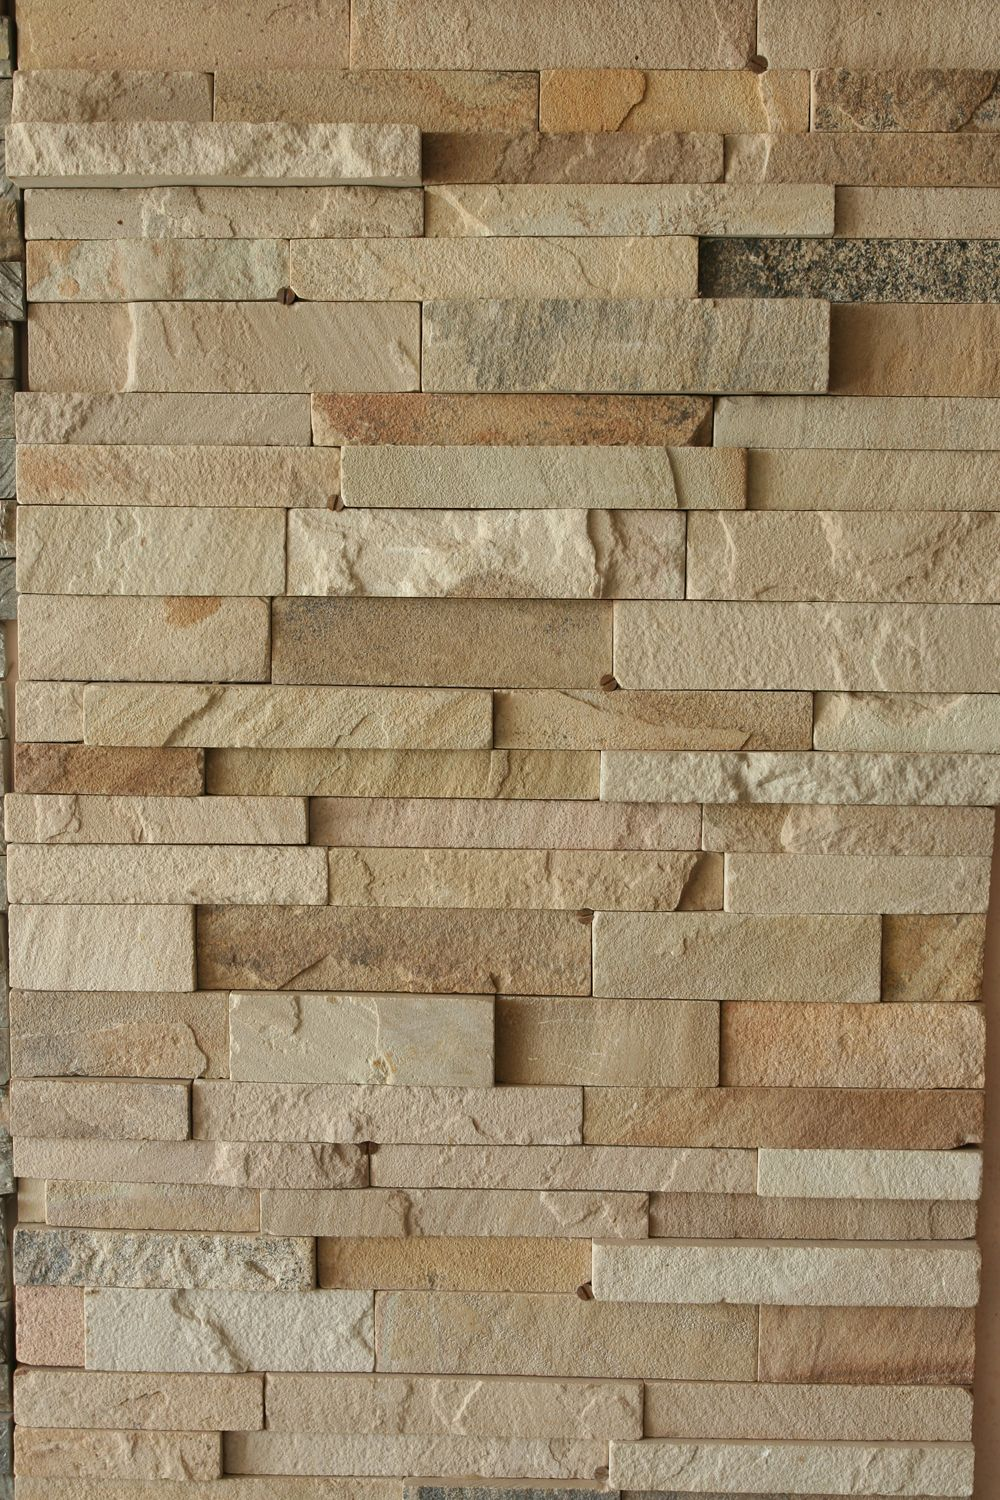 Stone marble granite exterior wall cladding view cladding wall - Find This Pin And More On Natural Stone Wall Cladding